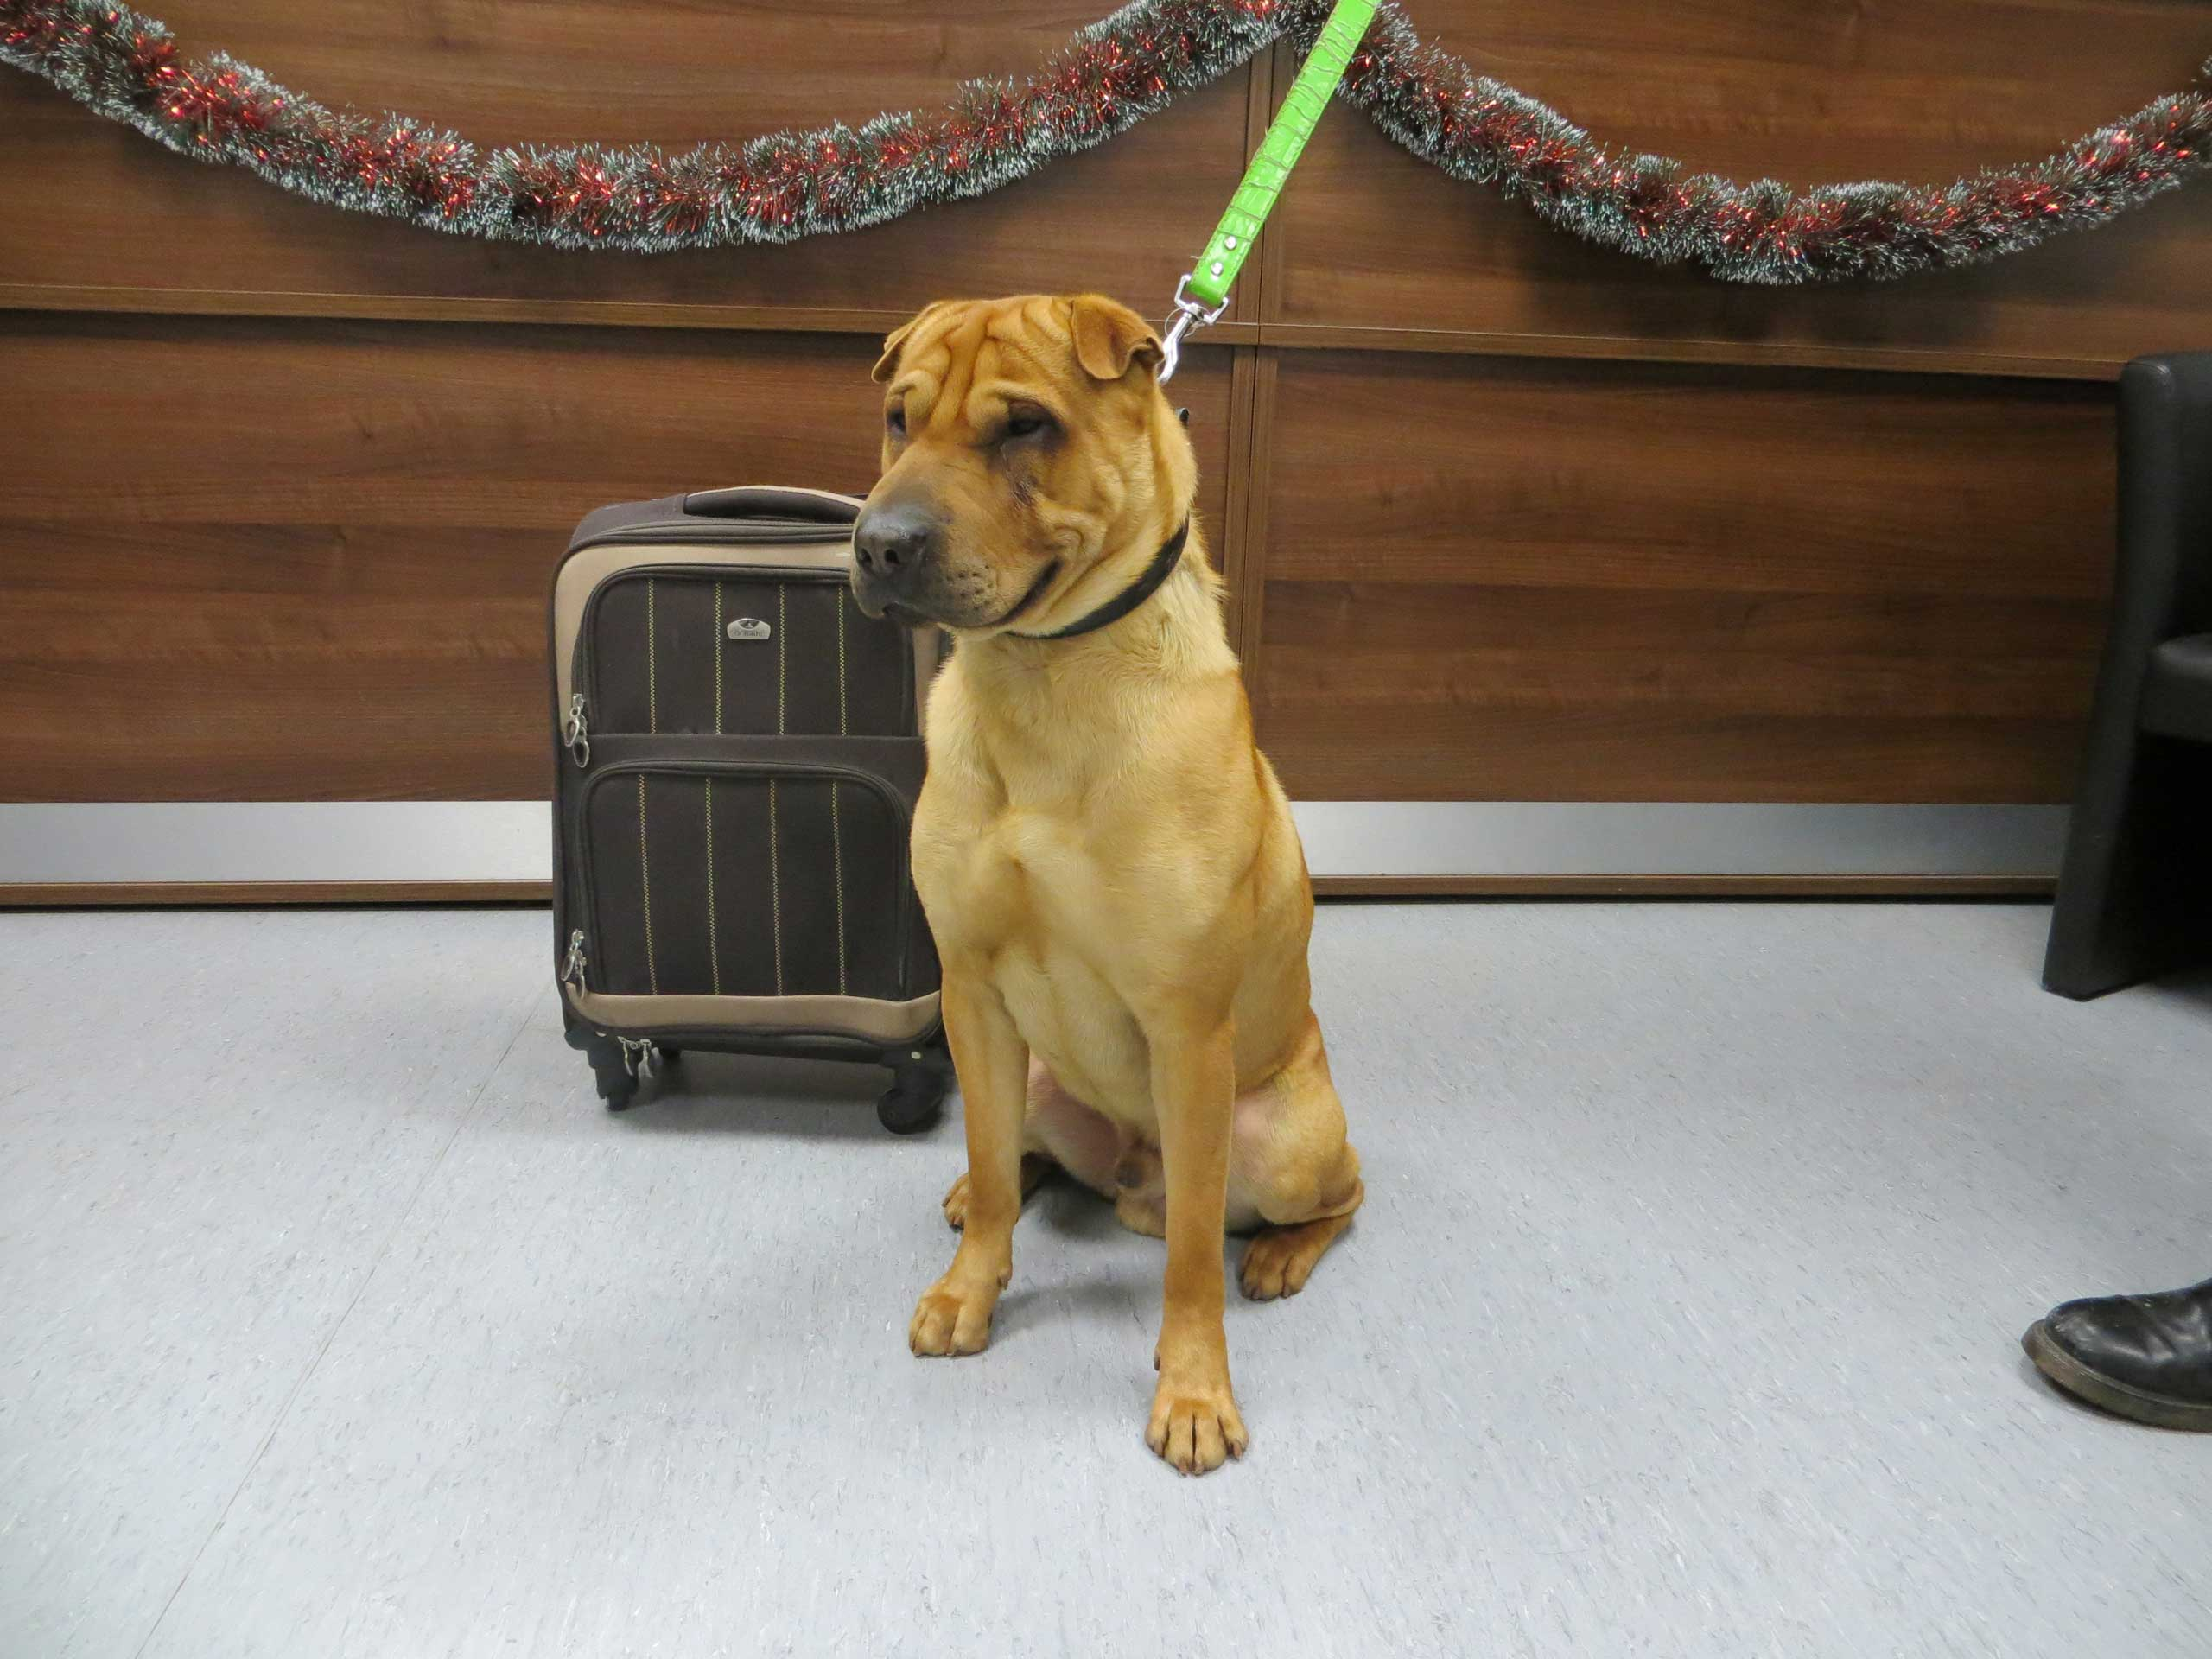 The male shar-pei crossbreed that was discovered tied to a railing outside the station in Ayrshire, Scotland, Jan. 2, 2015.